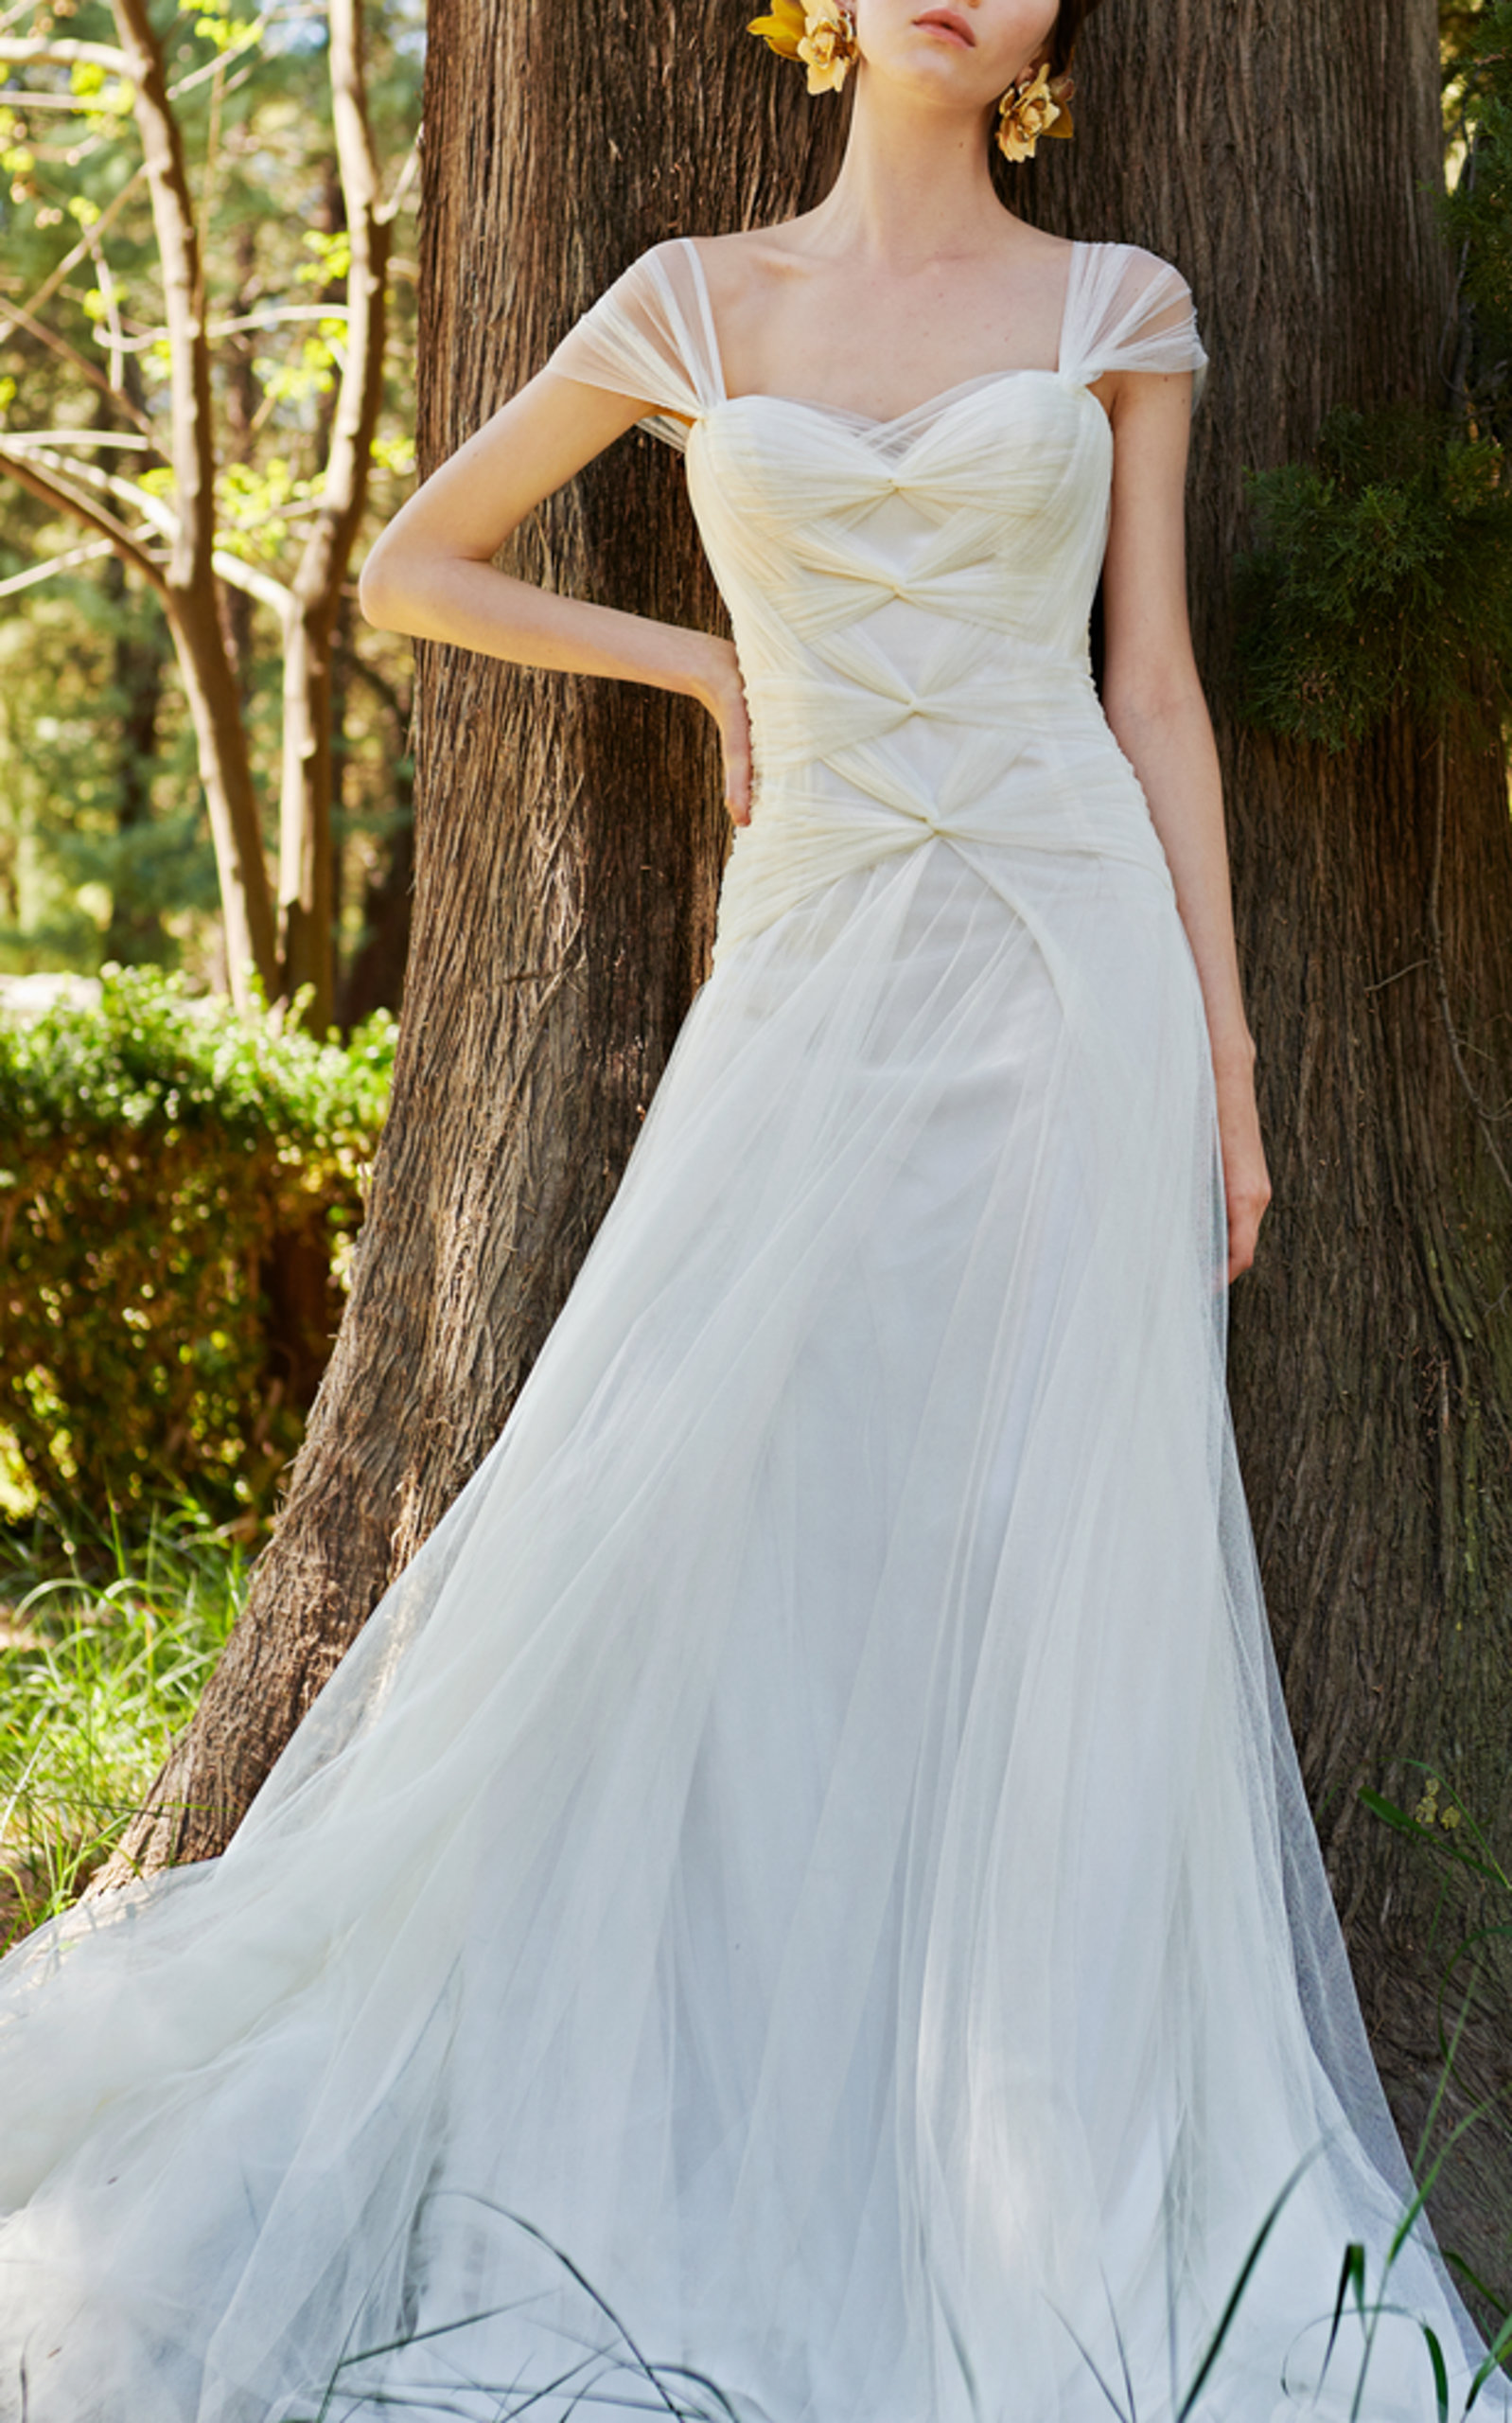 COSTARELLOS BRIDAL ETHEREAL SWEETHEART GOWN